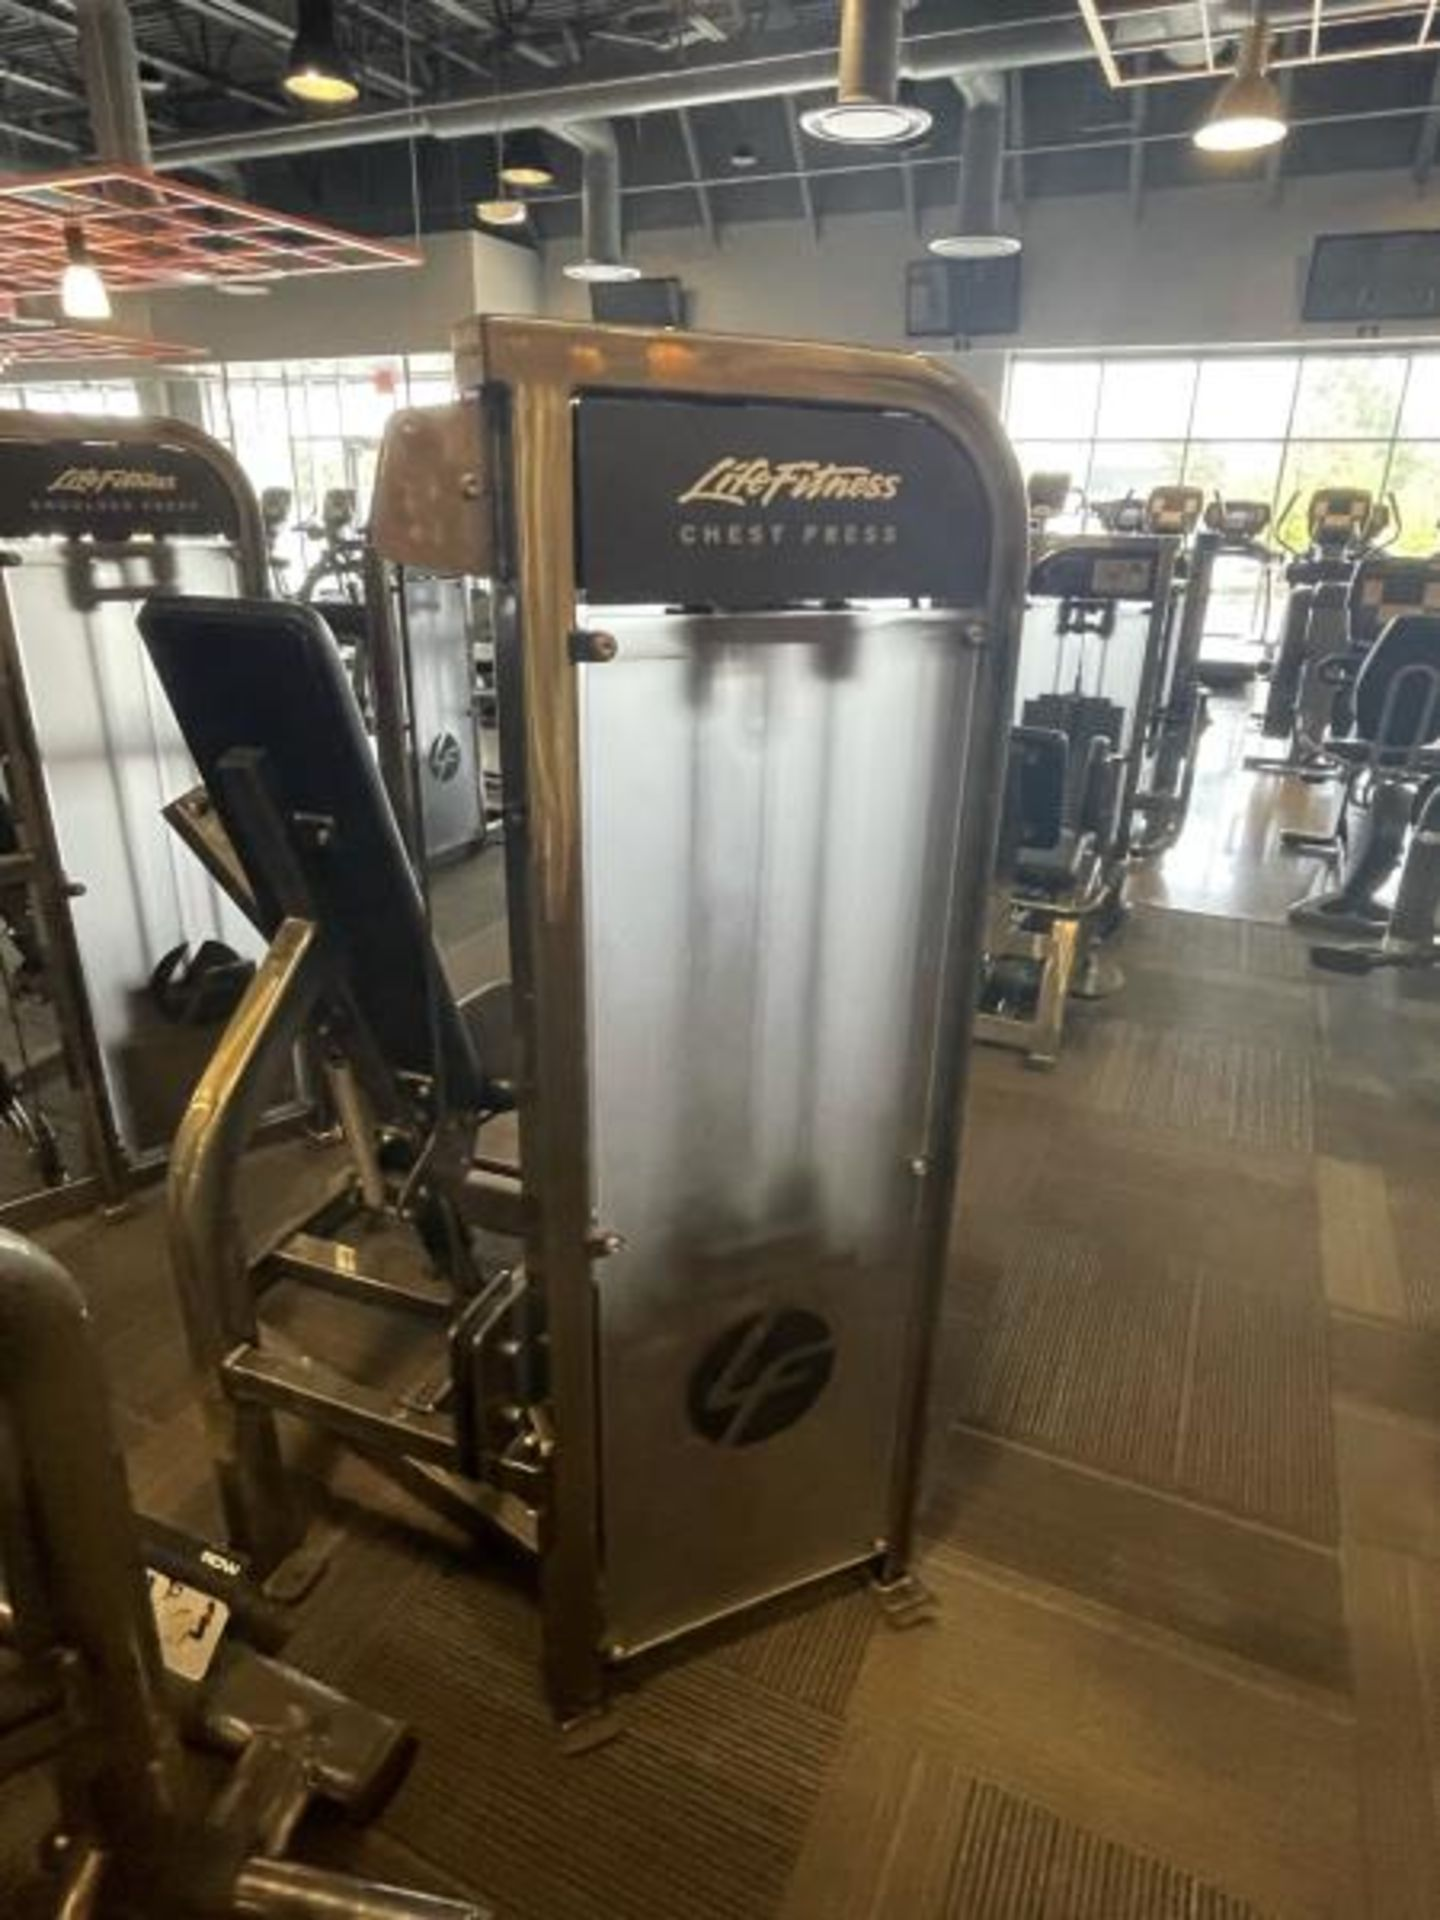 Life Fitness Chest Press M: PSCPSE - Image 4 of 4